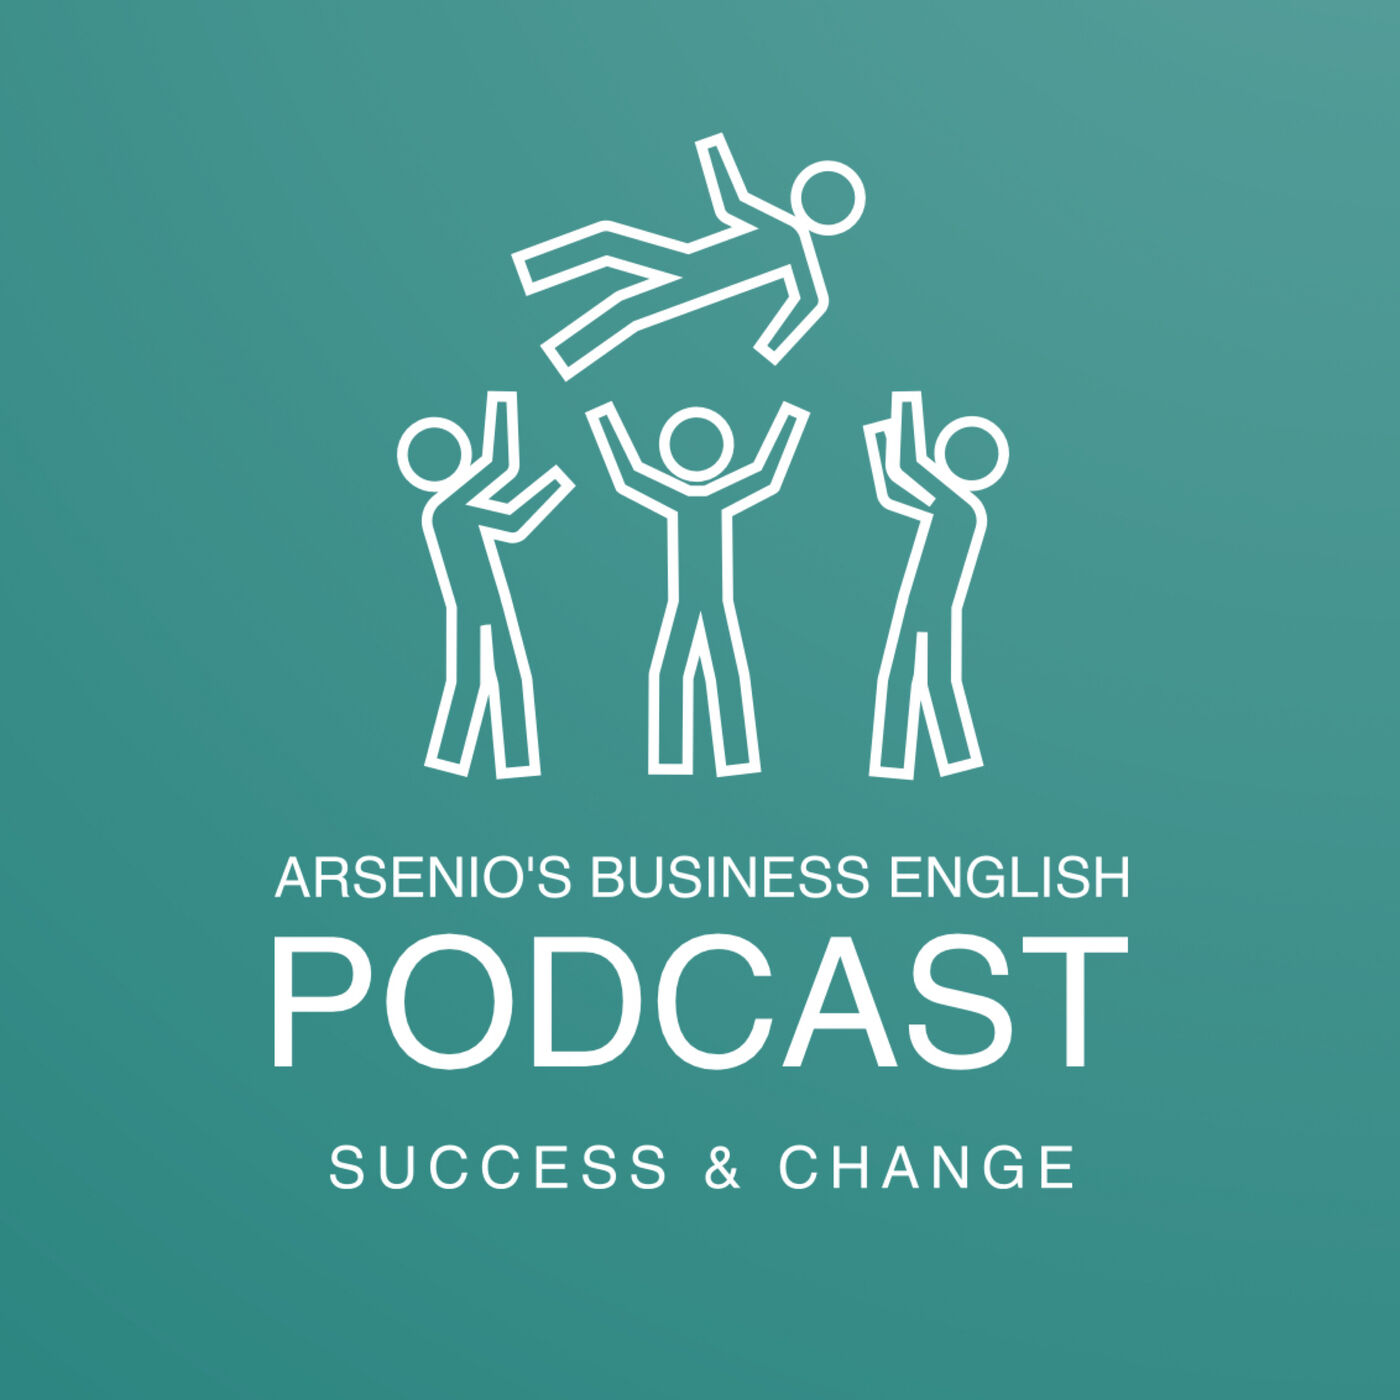 Arsenio's Business English Podcast | Season 6: Episode 36 | Success & Change: Macro Achievement